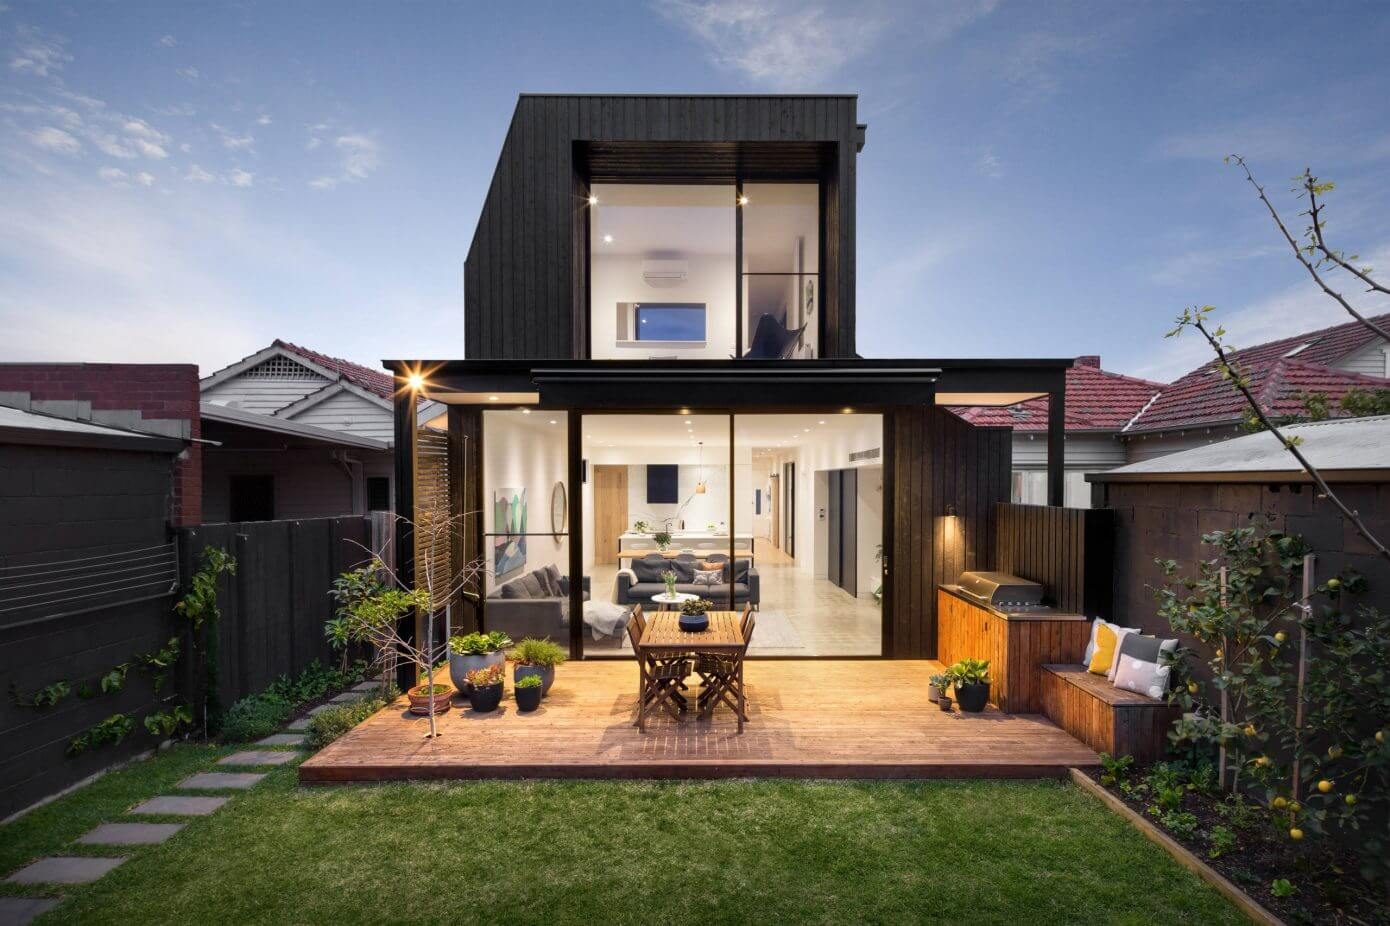 003 house melbourne aspect 11 homeadore for Modern house 11